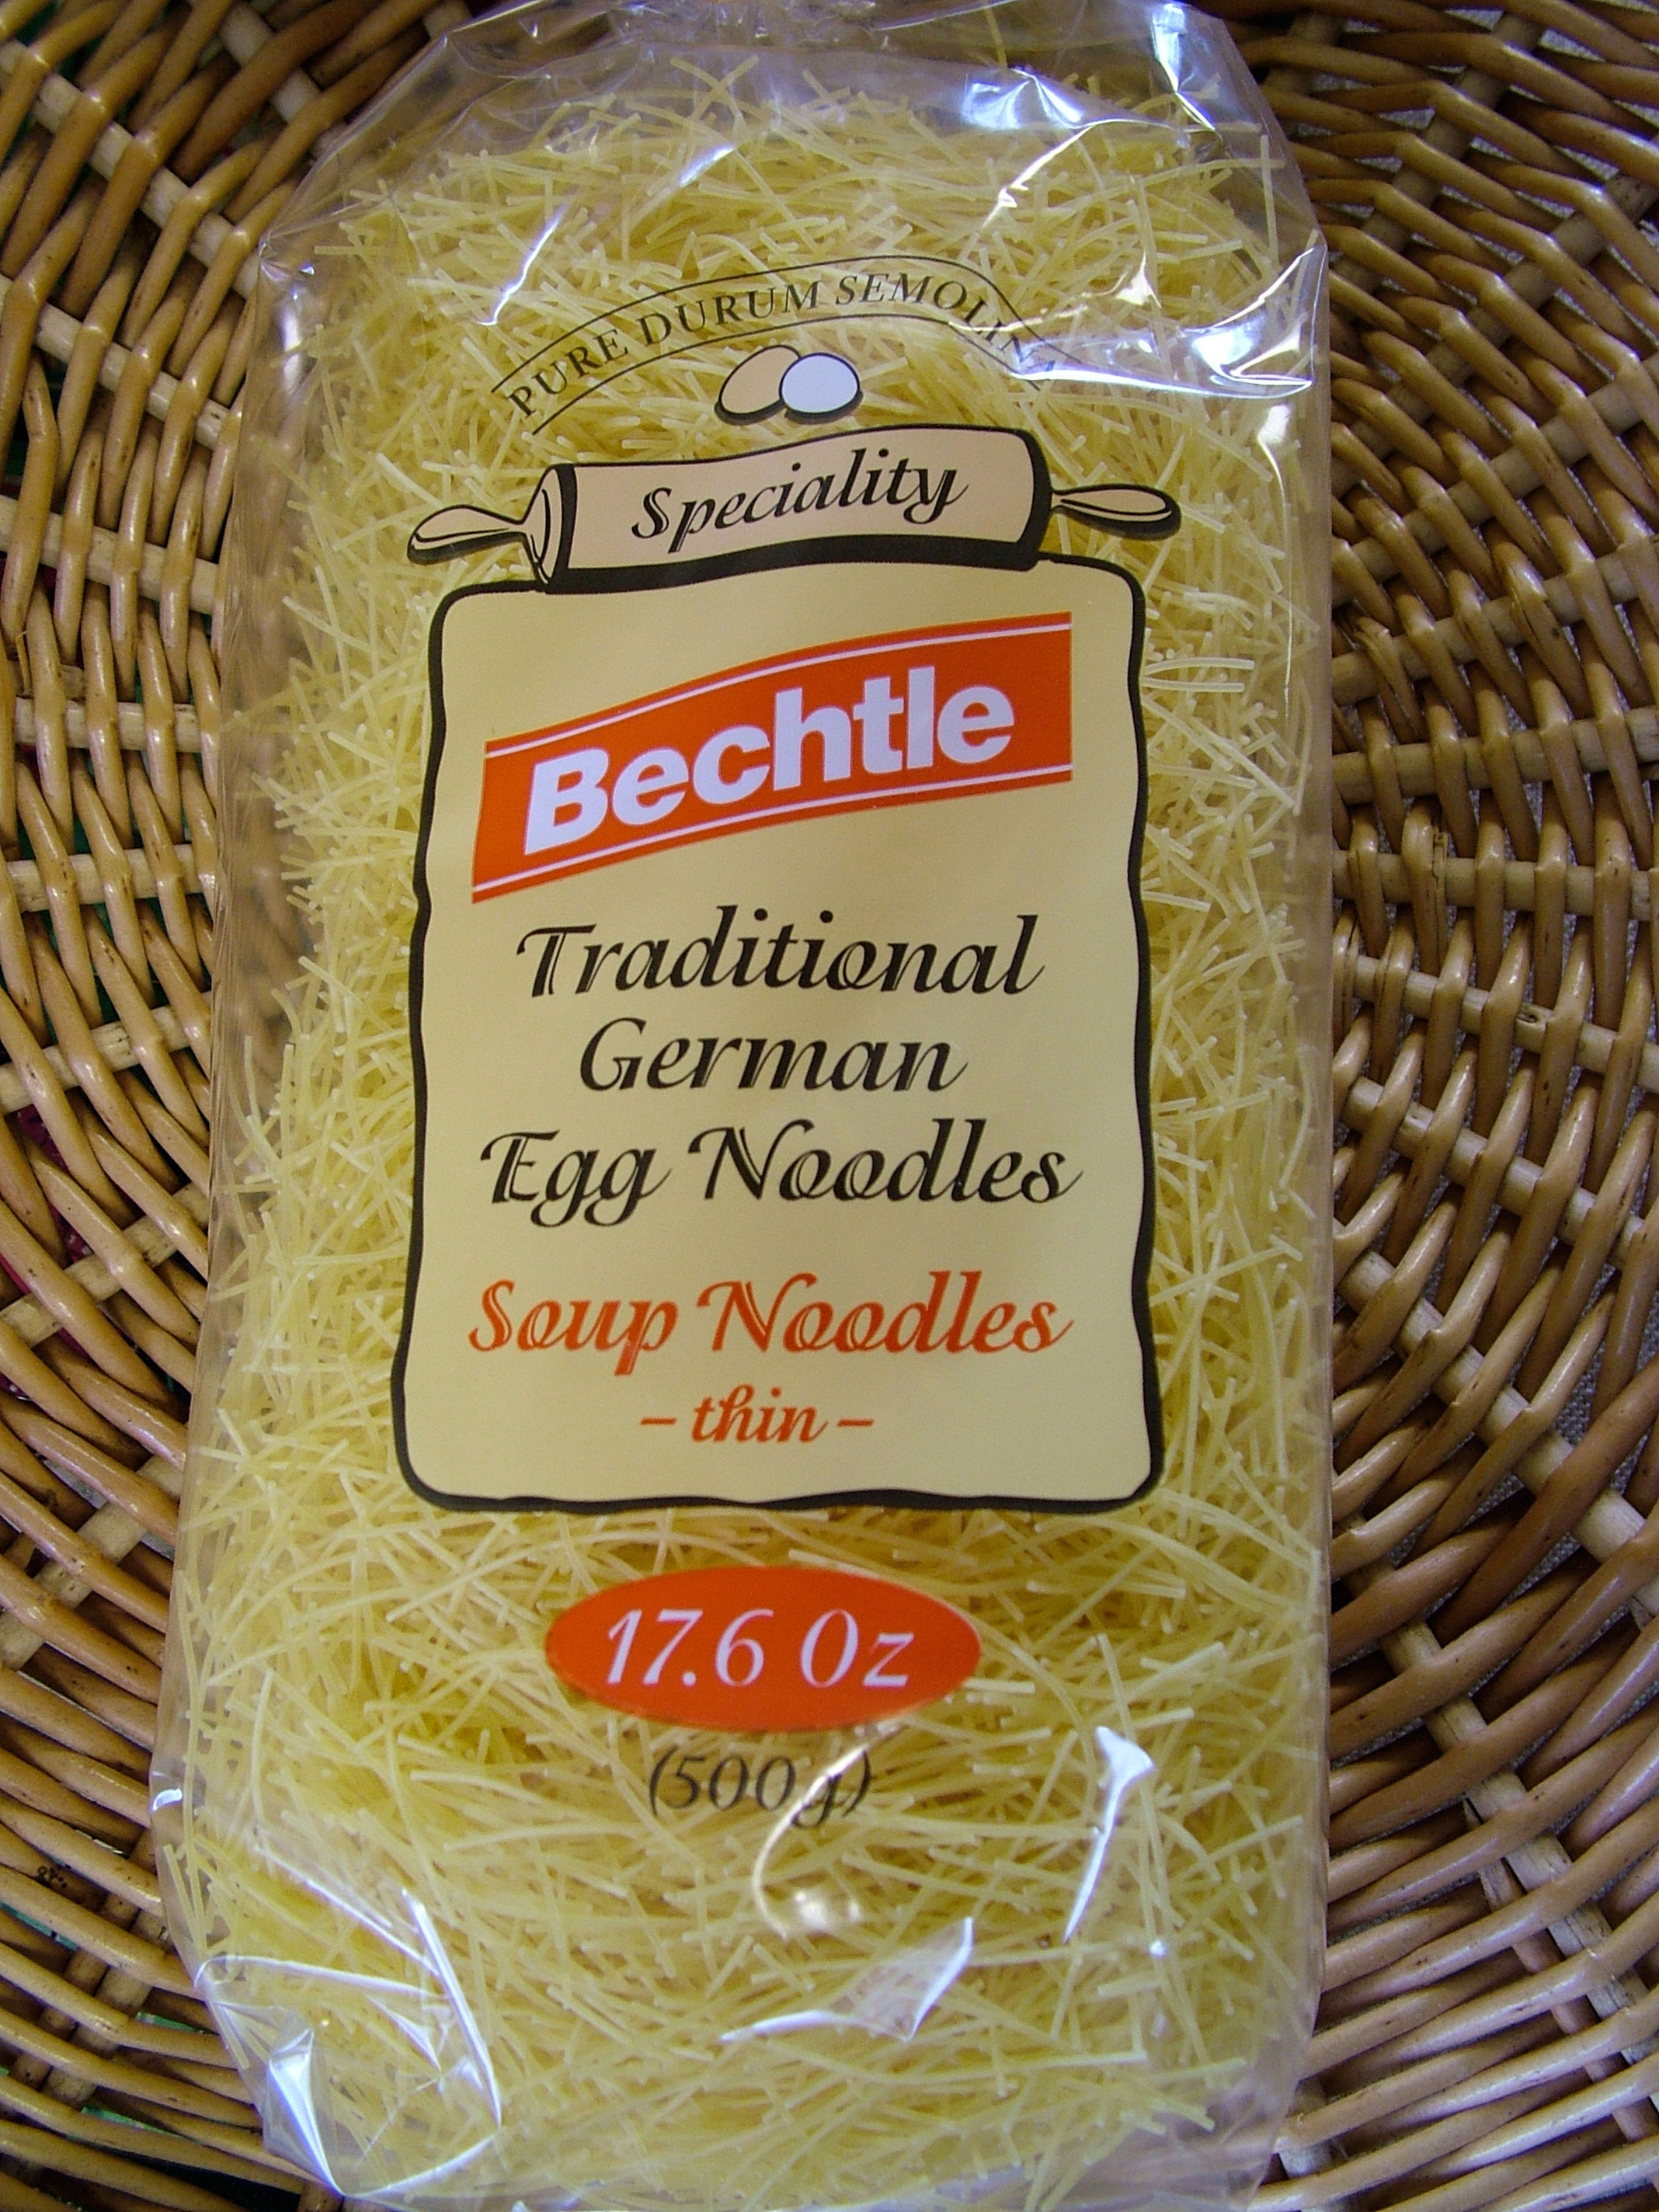 Bechtle Traditional German Egg Noodles, Soup Noodles, thin, 500g